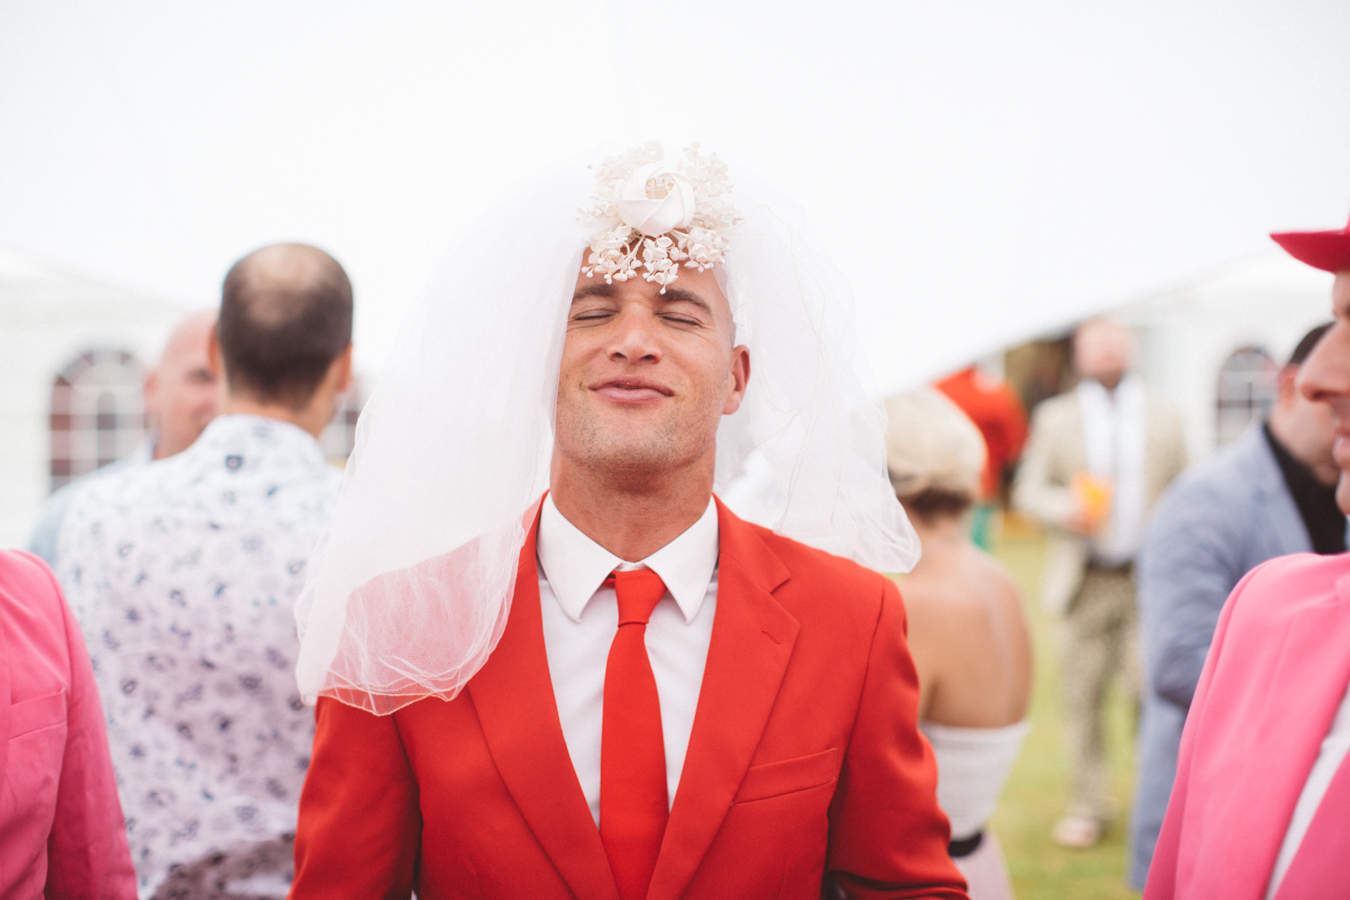 One of a set of images taken at this Destination Wedding of Jo and Steve, Jersey The Channel islands. Red Opposuit wears the brides veil. Wedding Photography By Matt Porteous & Max Burnett